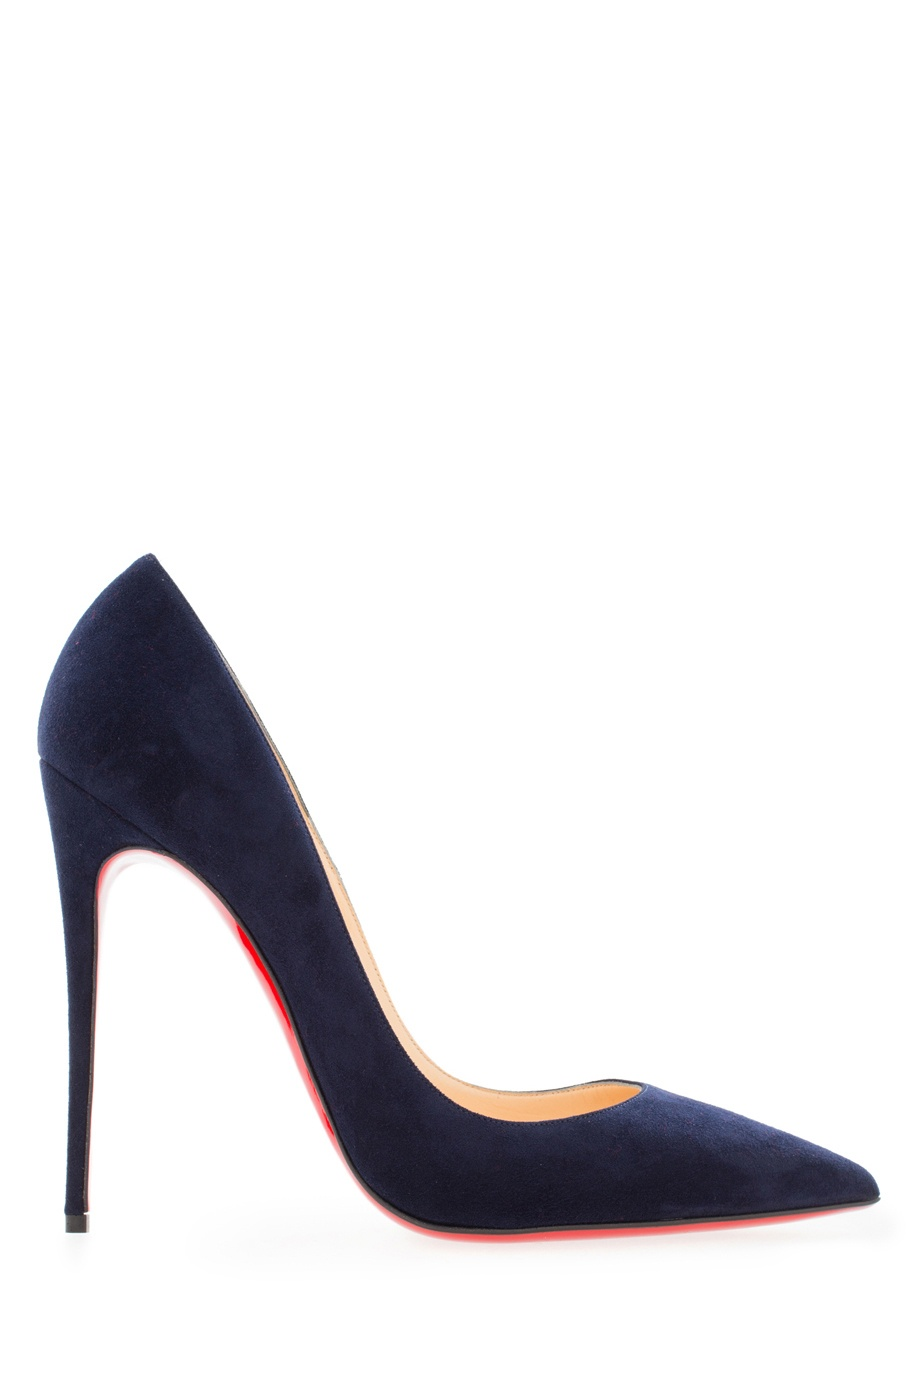 Замшевые туфли So Kate 120 Christian Louboutin (фото)